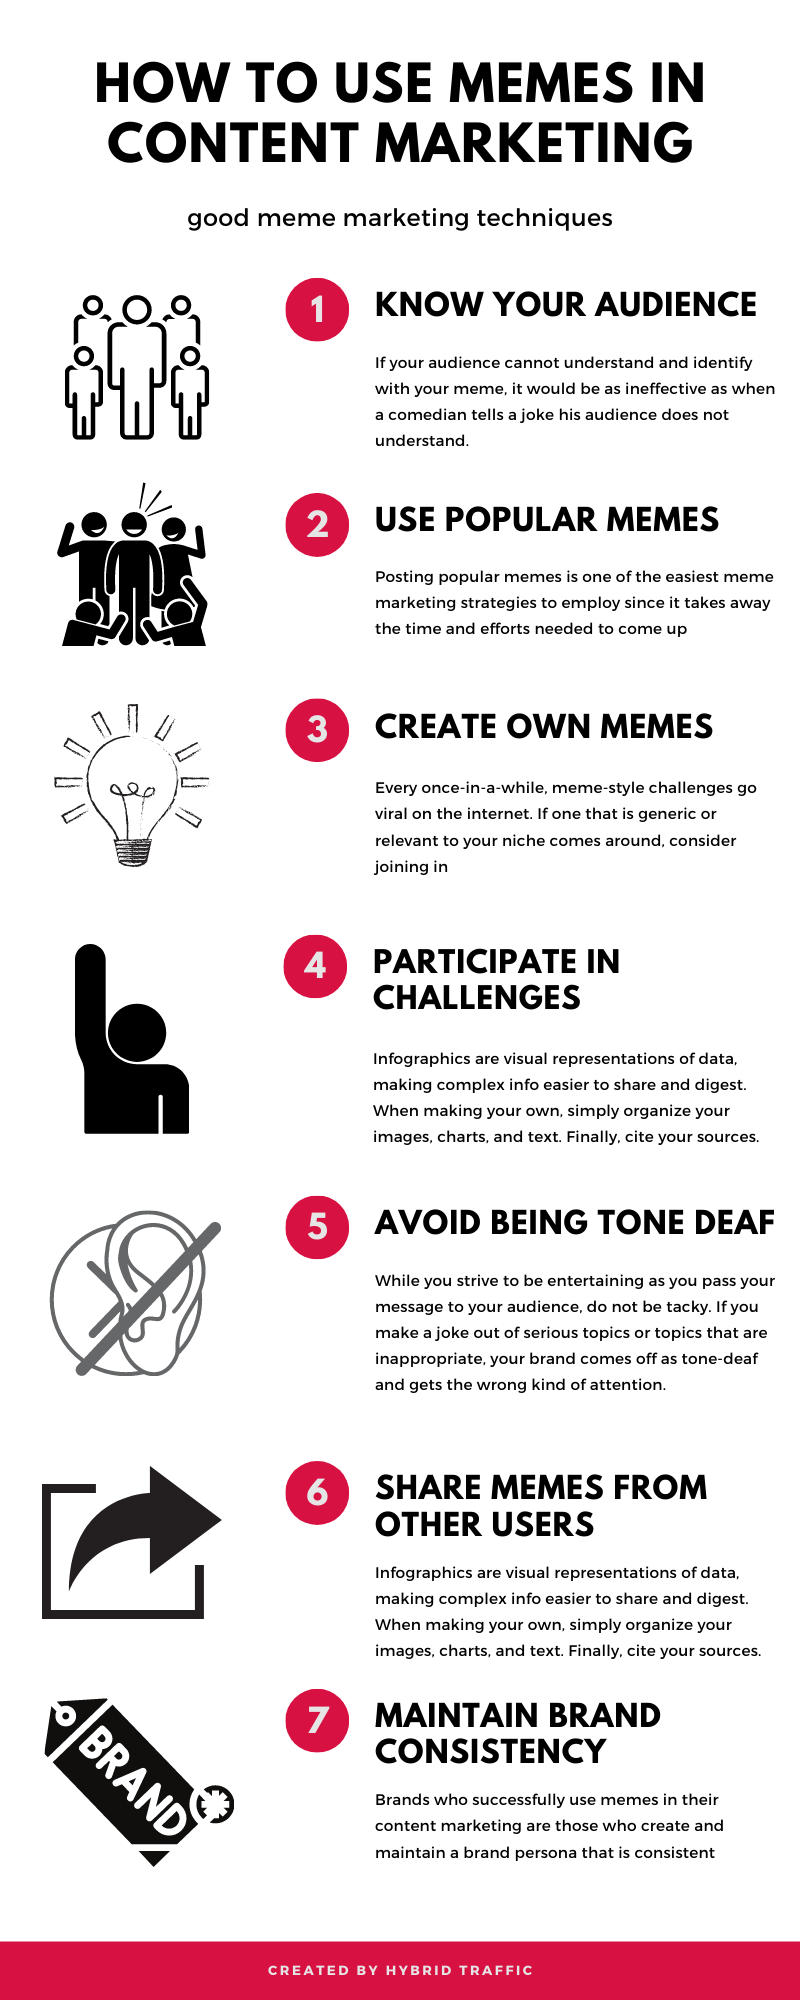 Content marketing as Memes